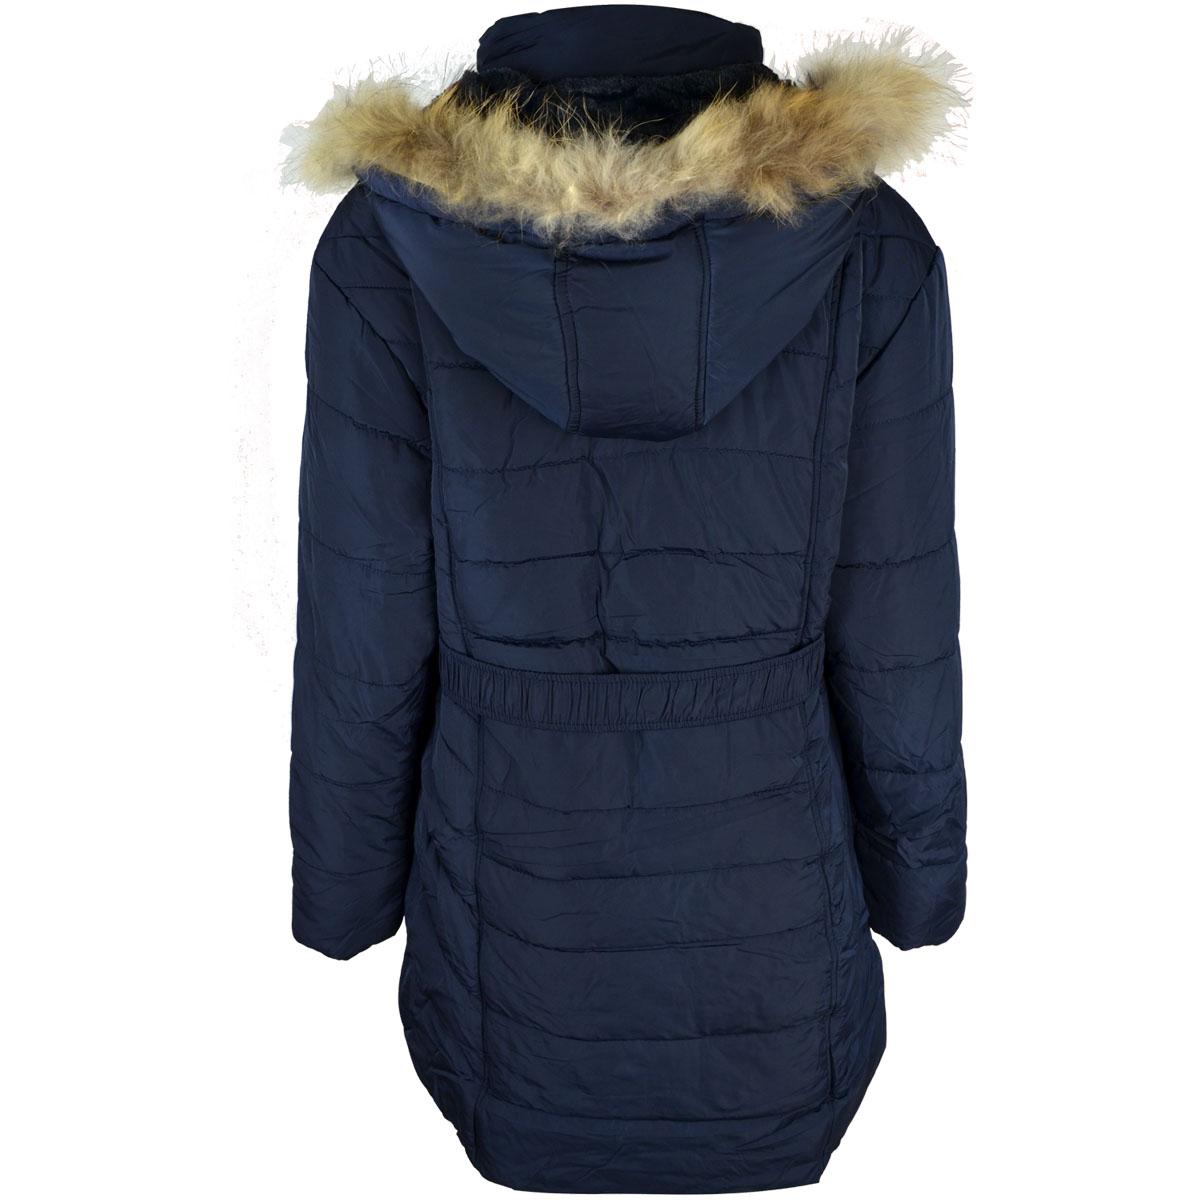 thumbnail 8 - Womens-Ladies-Plus-Over-Size-Winter-Long-Jacket-Puffer-Coat-Detachable-Hood